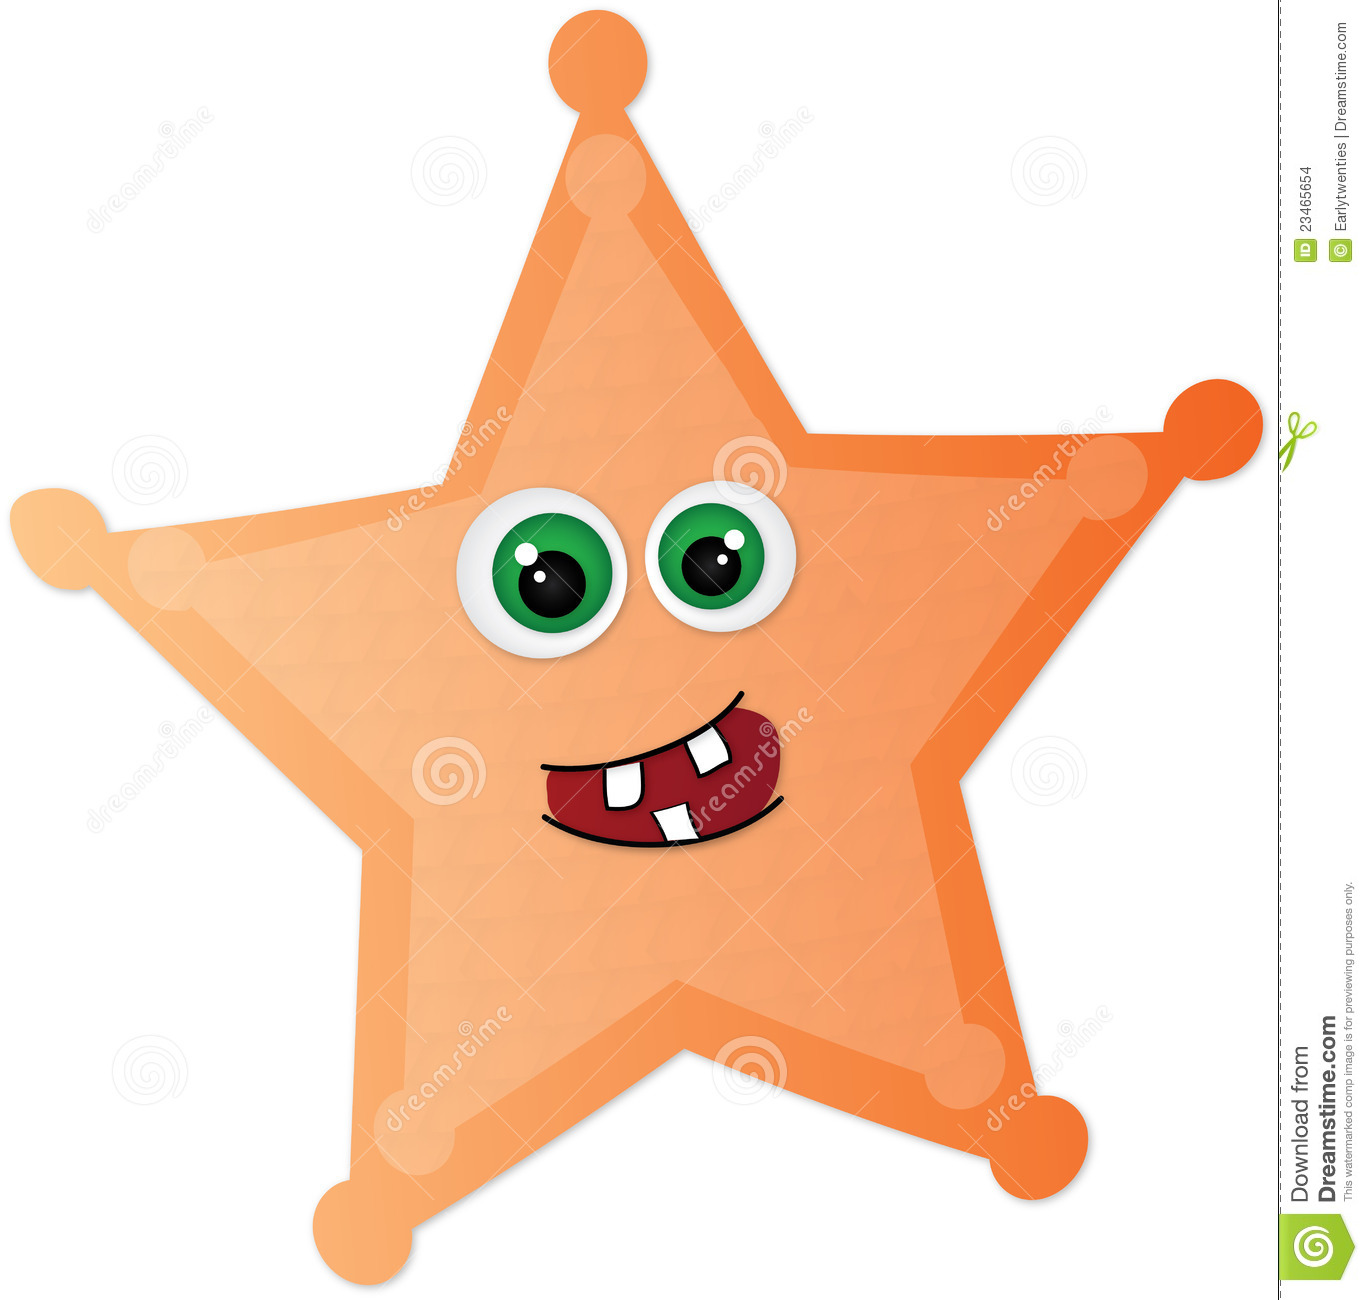 Cute Doodle Wallpaper Hd Starfish Cartoon